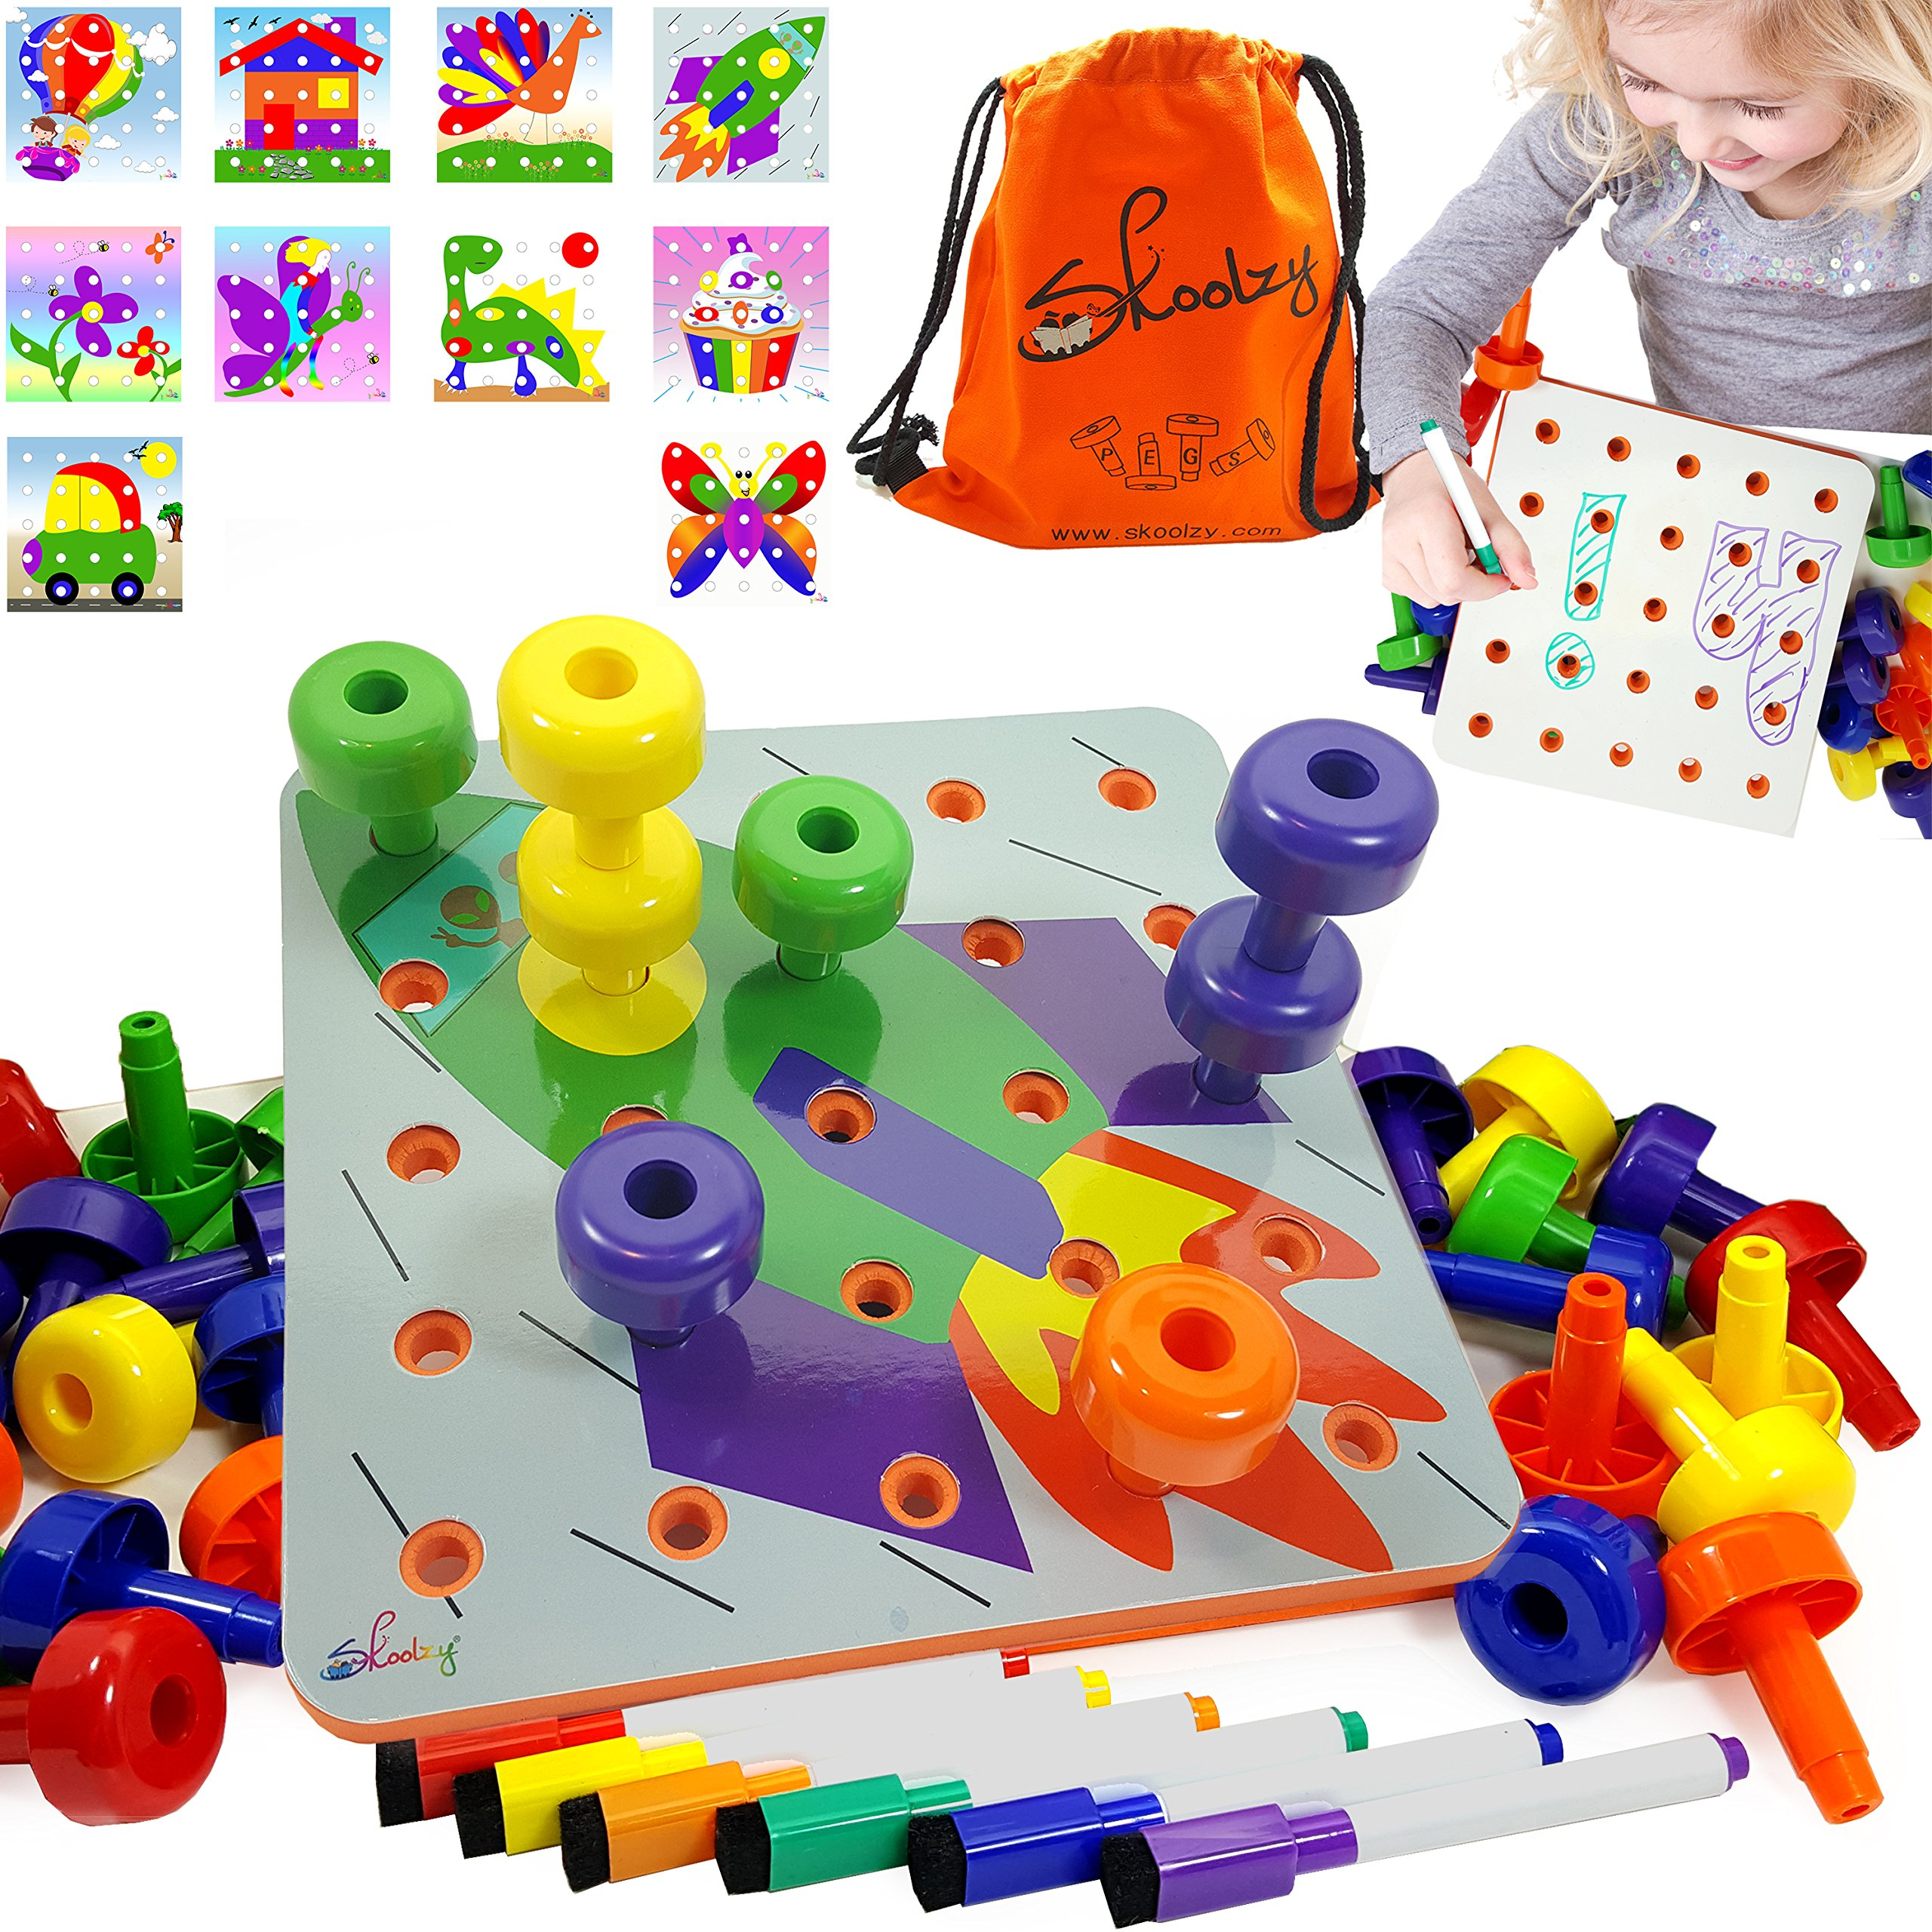 Skoolzy Toddler Educational Toys - Peg Puzzles Toddler Toys for Kids Ages 1yr - 4yr.Stacking Pegboard Creative Art for 1, 2, 3, 4 Year Old Boys or Girls | 45pc Peg Board, Pens Cards by Skoolzy